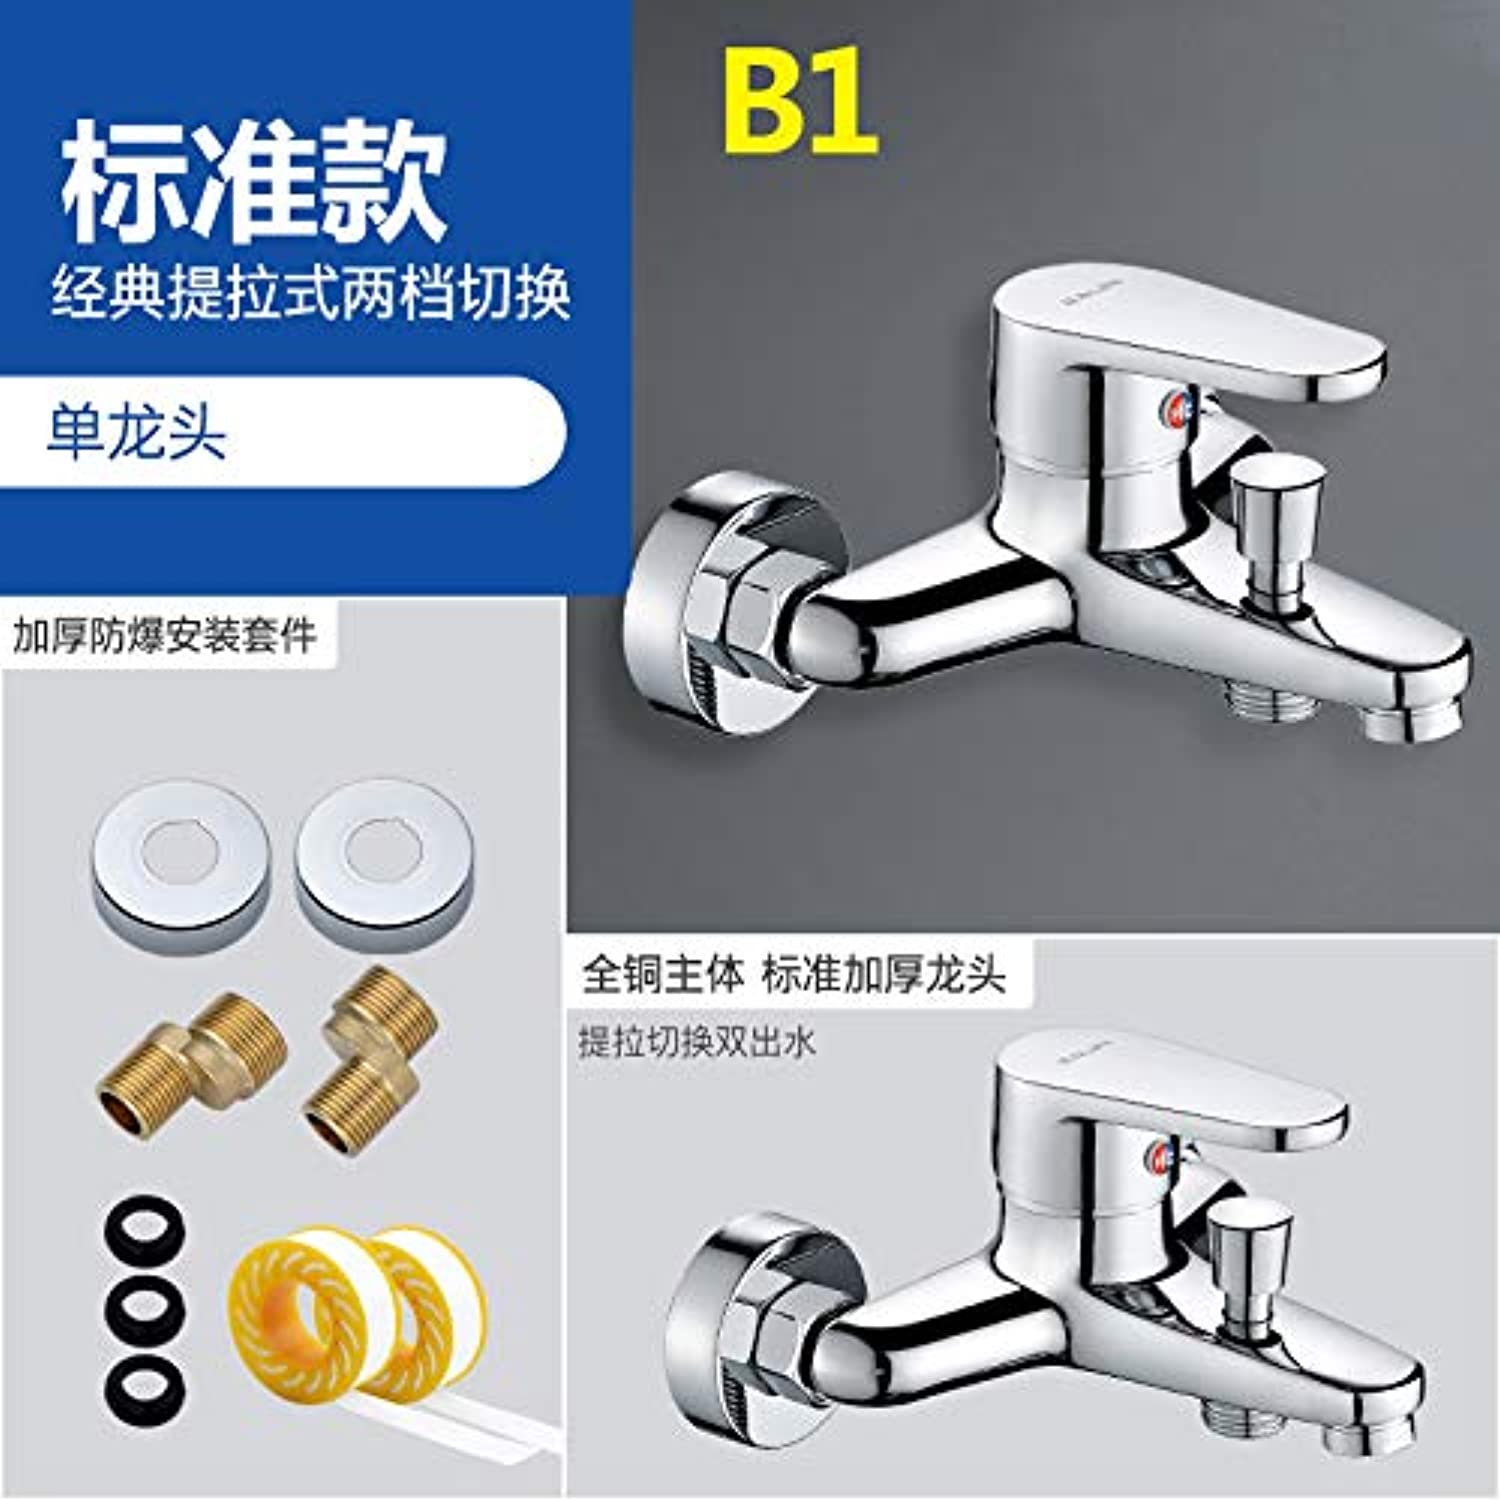 PajCzh Bathroom Fixturesshower Faucet Bathroom Switch Hot And Cold Faucet Wall Mounted Bath Bath Bath Electric Mixing Valve Water Heater Shower, B1 Standard Thick Faucet